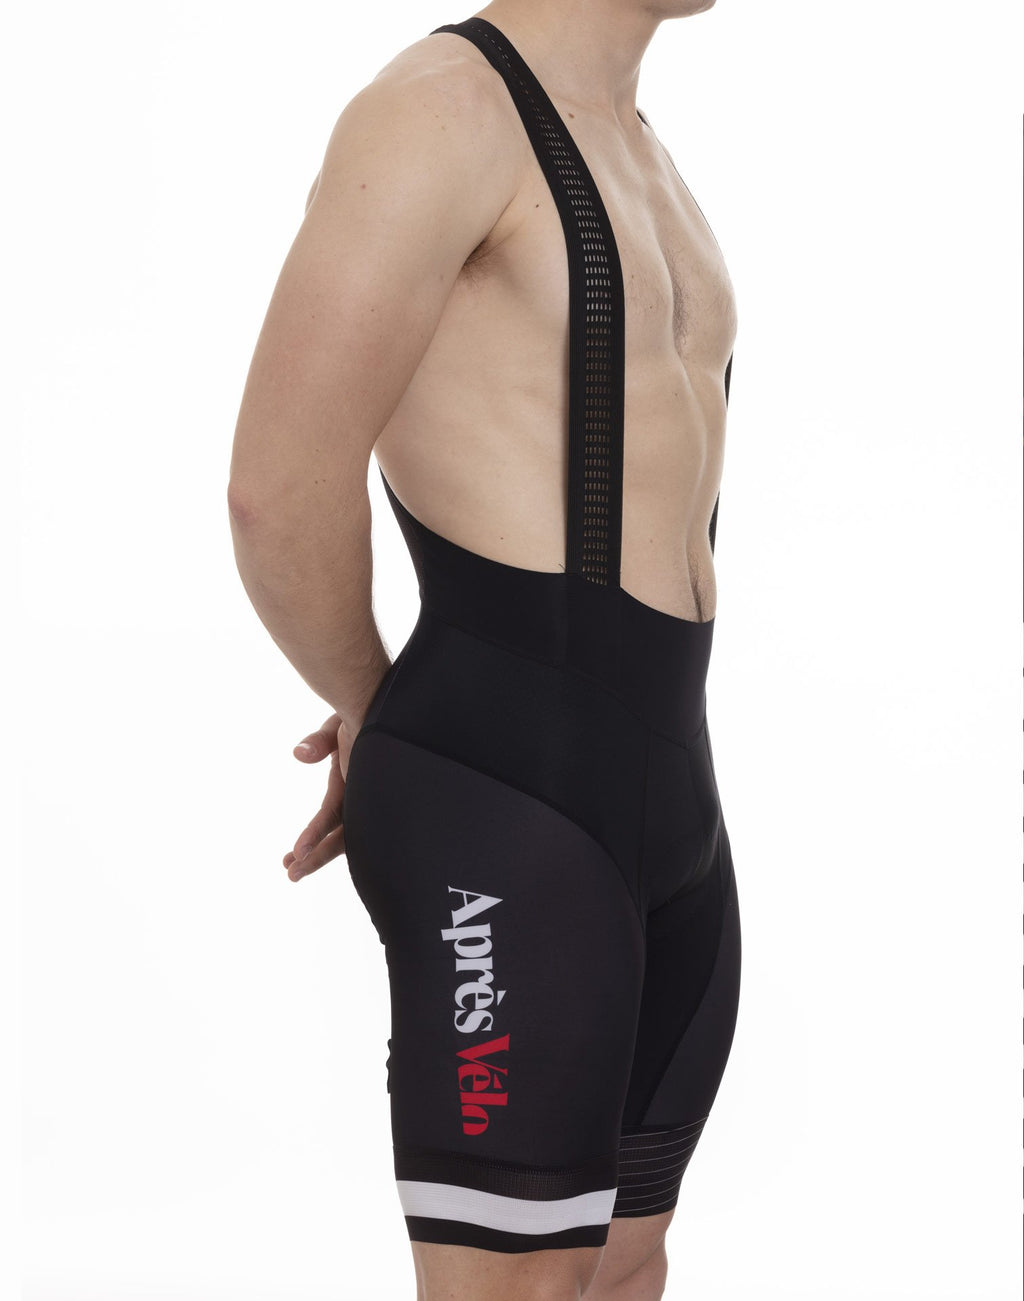 AV Signature Cycling Bib Shorts